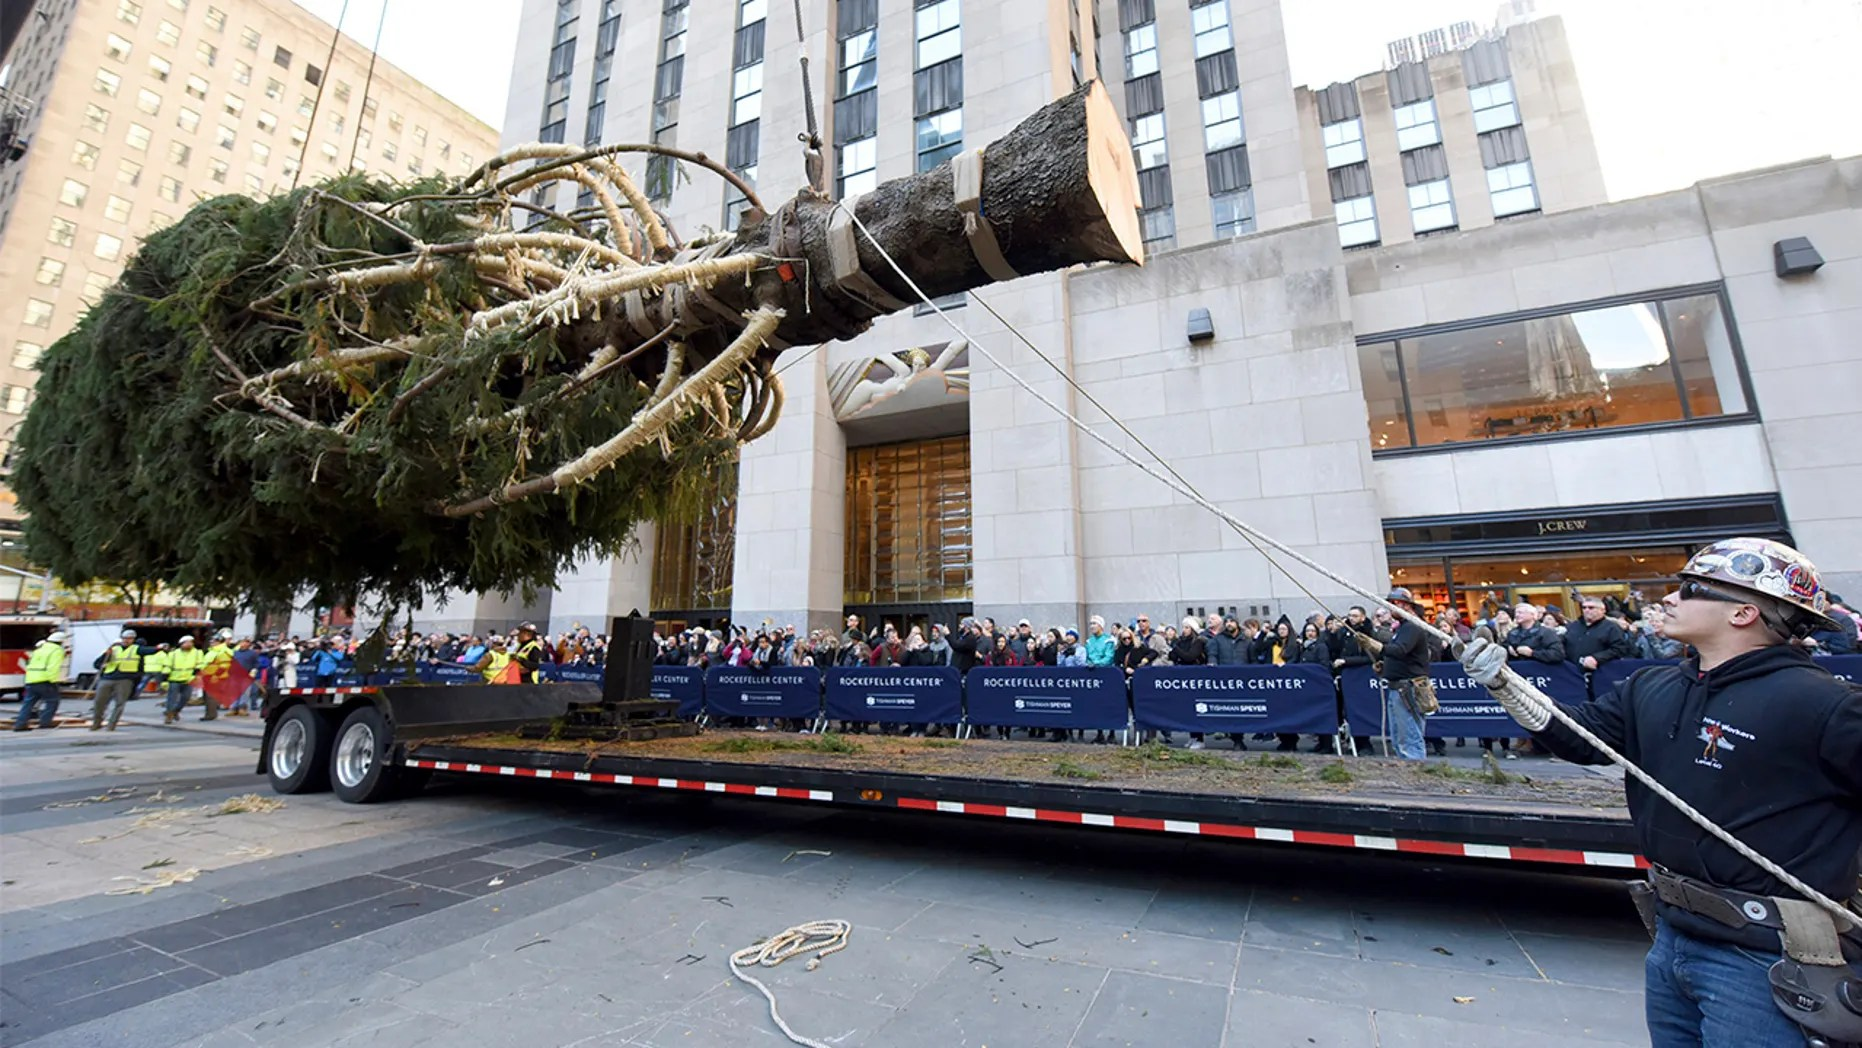 Workers prepare to raise the 2018 Rockefeller Center Christmas tree, a 72-foot tall, 12-ton Norway Spruce from Wallkill, New York, on Saturday. The 86th Rockefeller Center Christmas Tree Lighting ceremony will take place on Wednesday, Nov. 28. (Diane Bondareff/AP Images for Tishman Speyer)